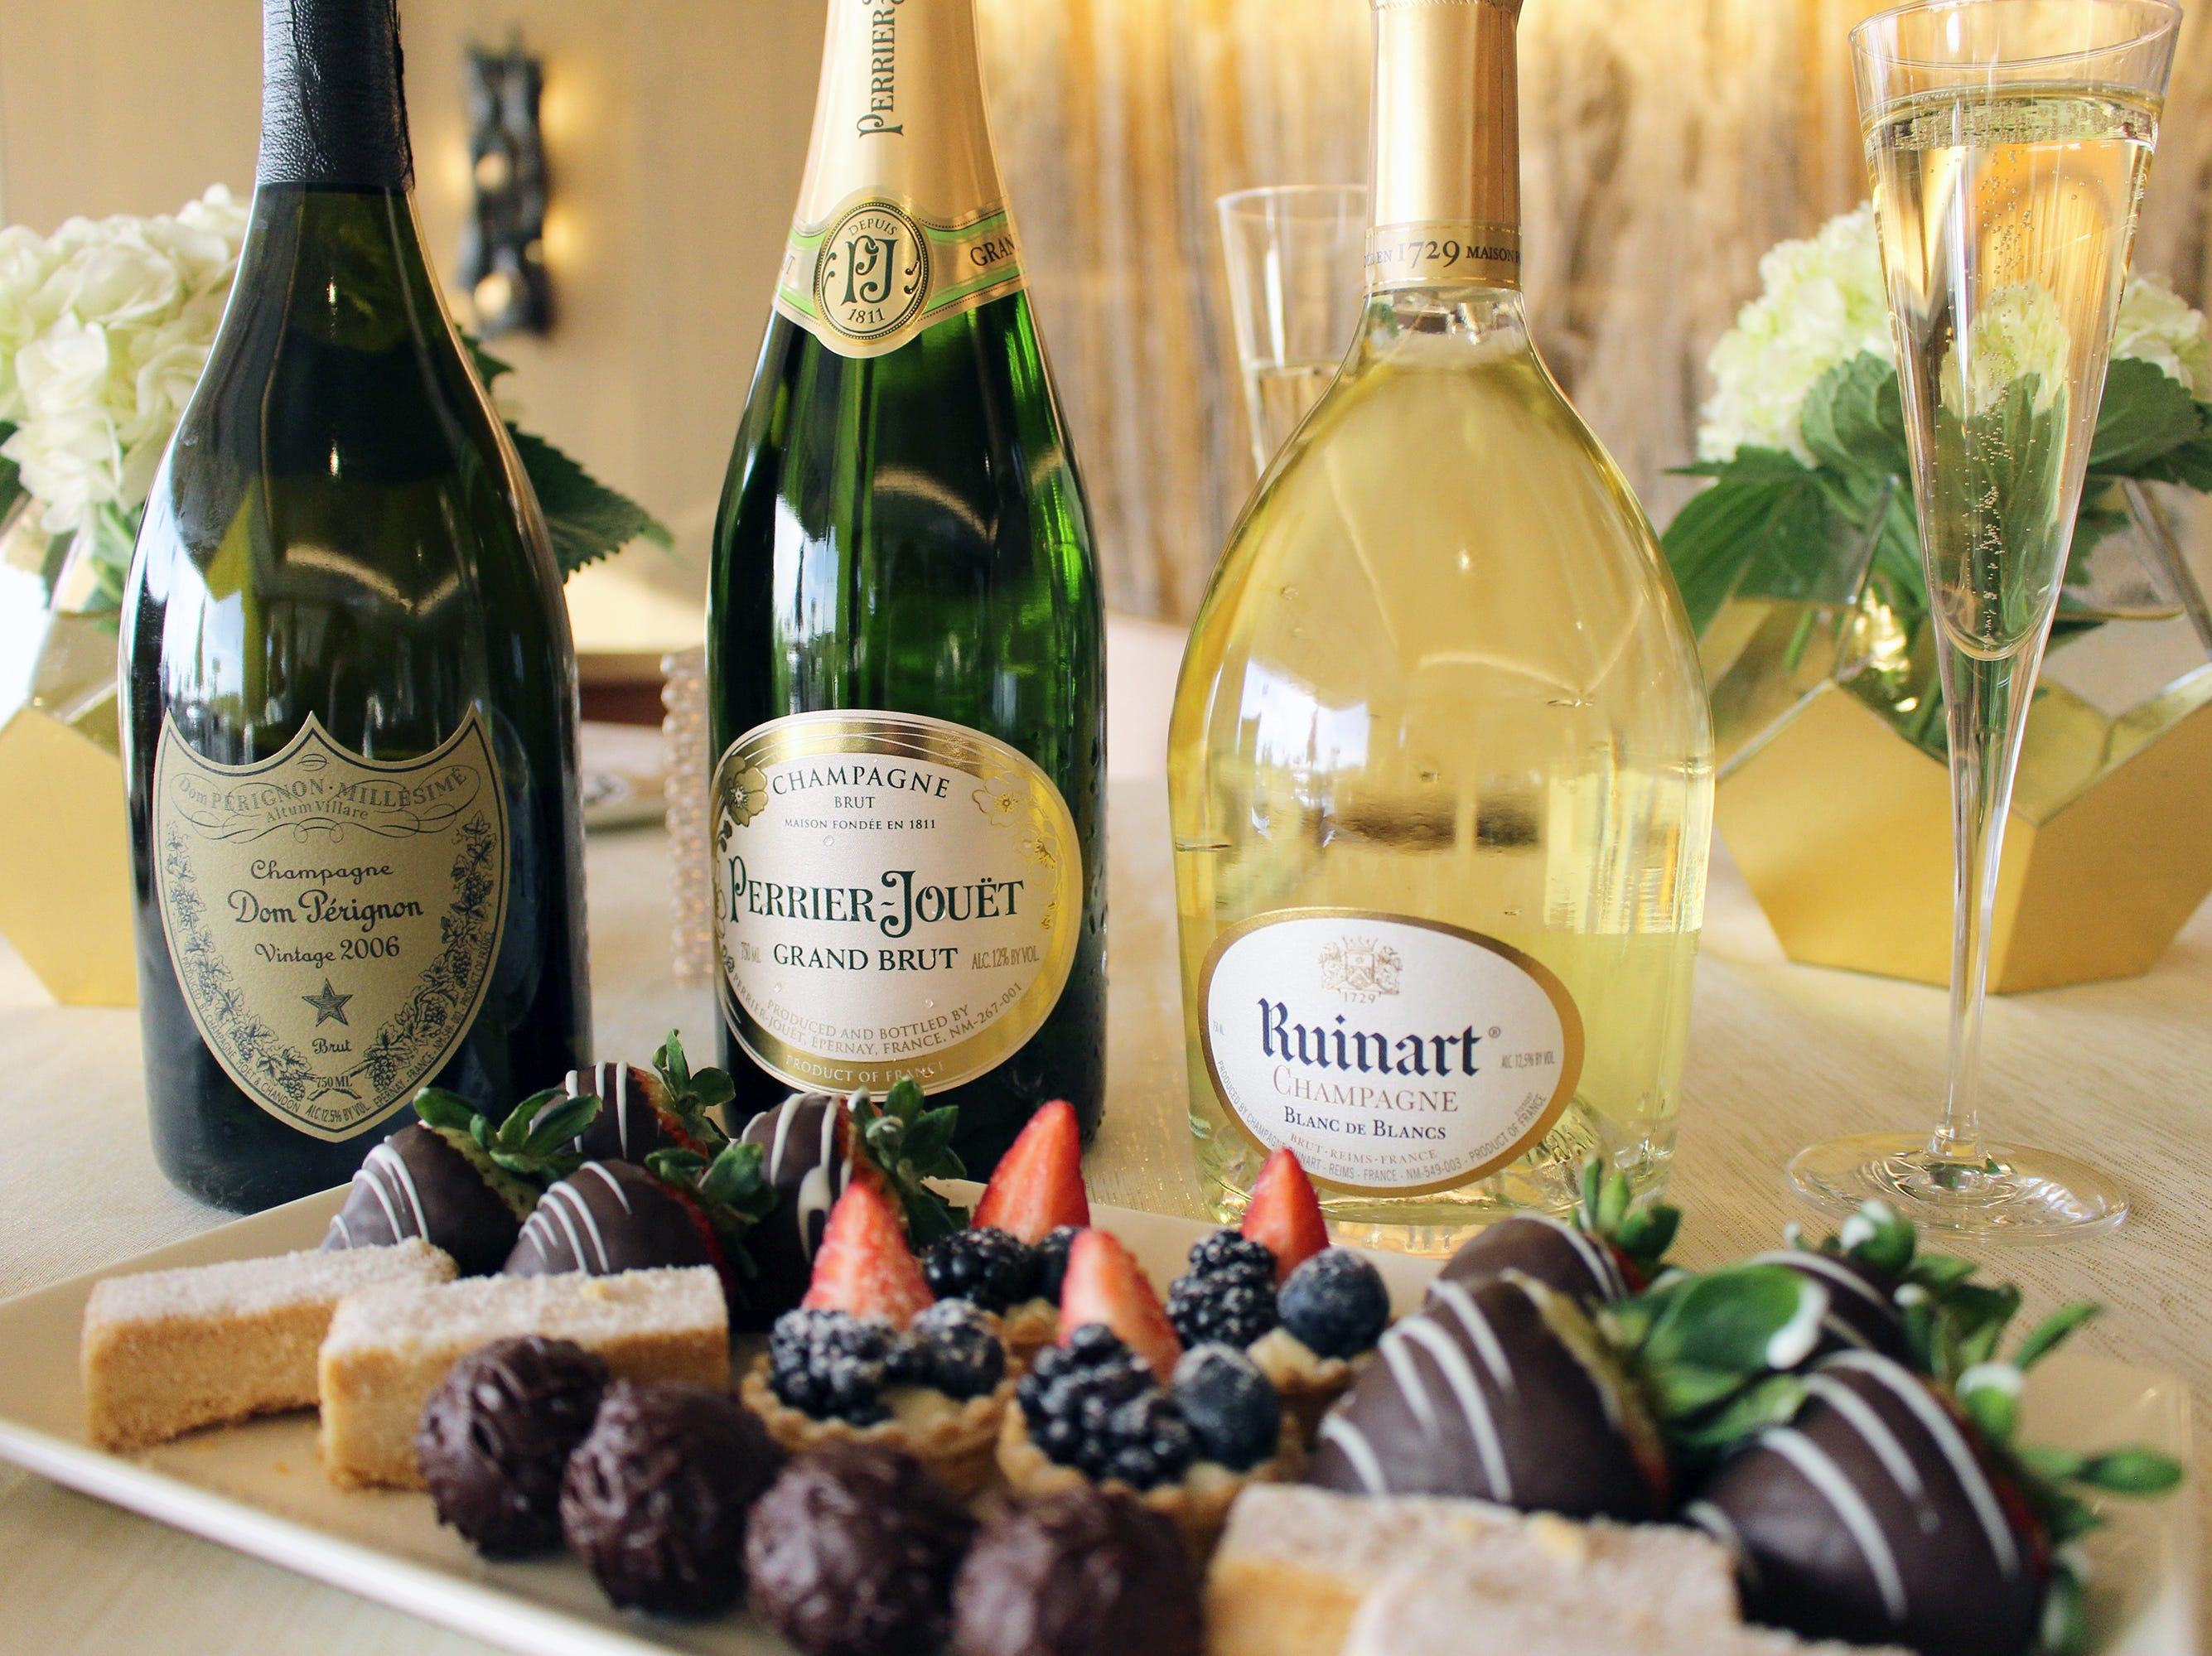 The Phoenician will launch Champagne Saturdays in February. Guests to the luxury resort's tea room will enjoy champagne paired with a three-course menu of small bites.